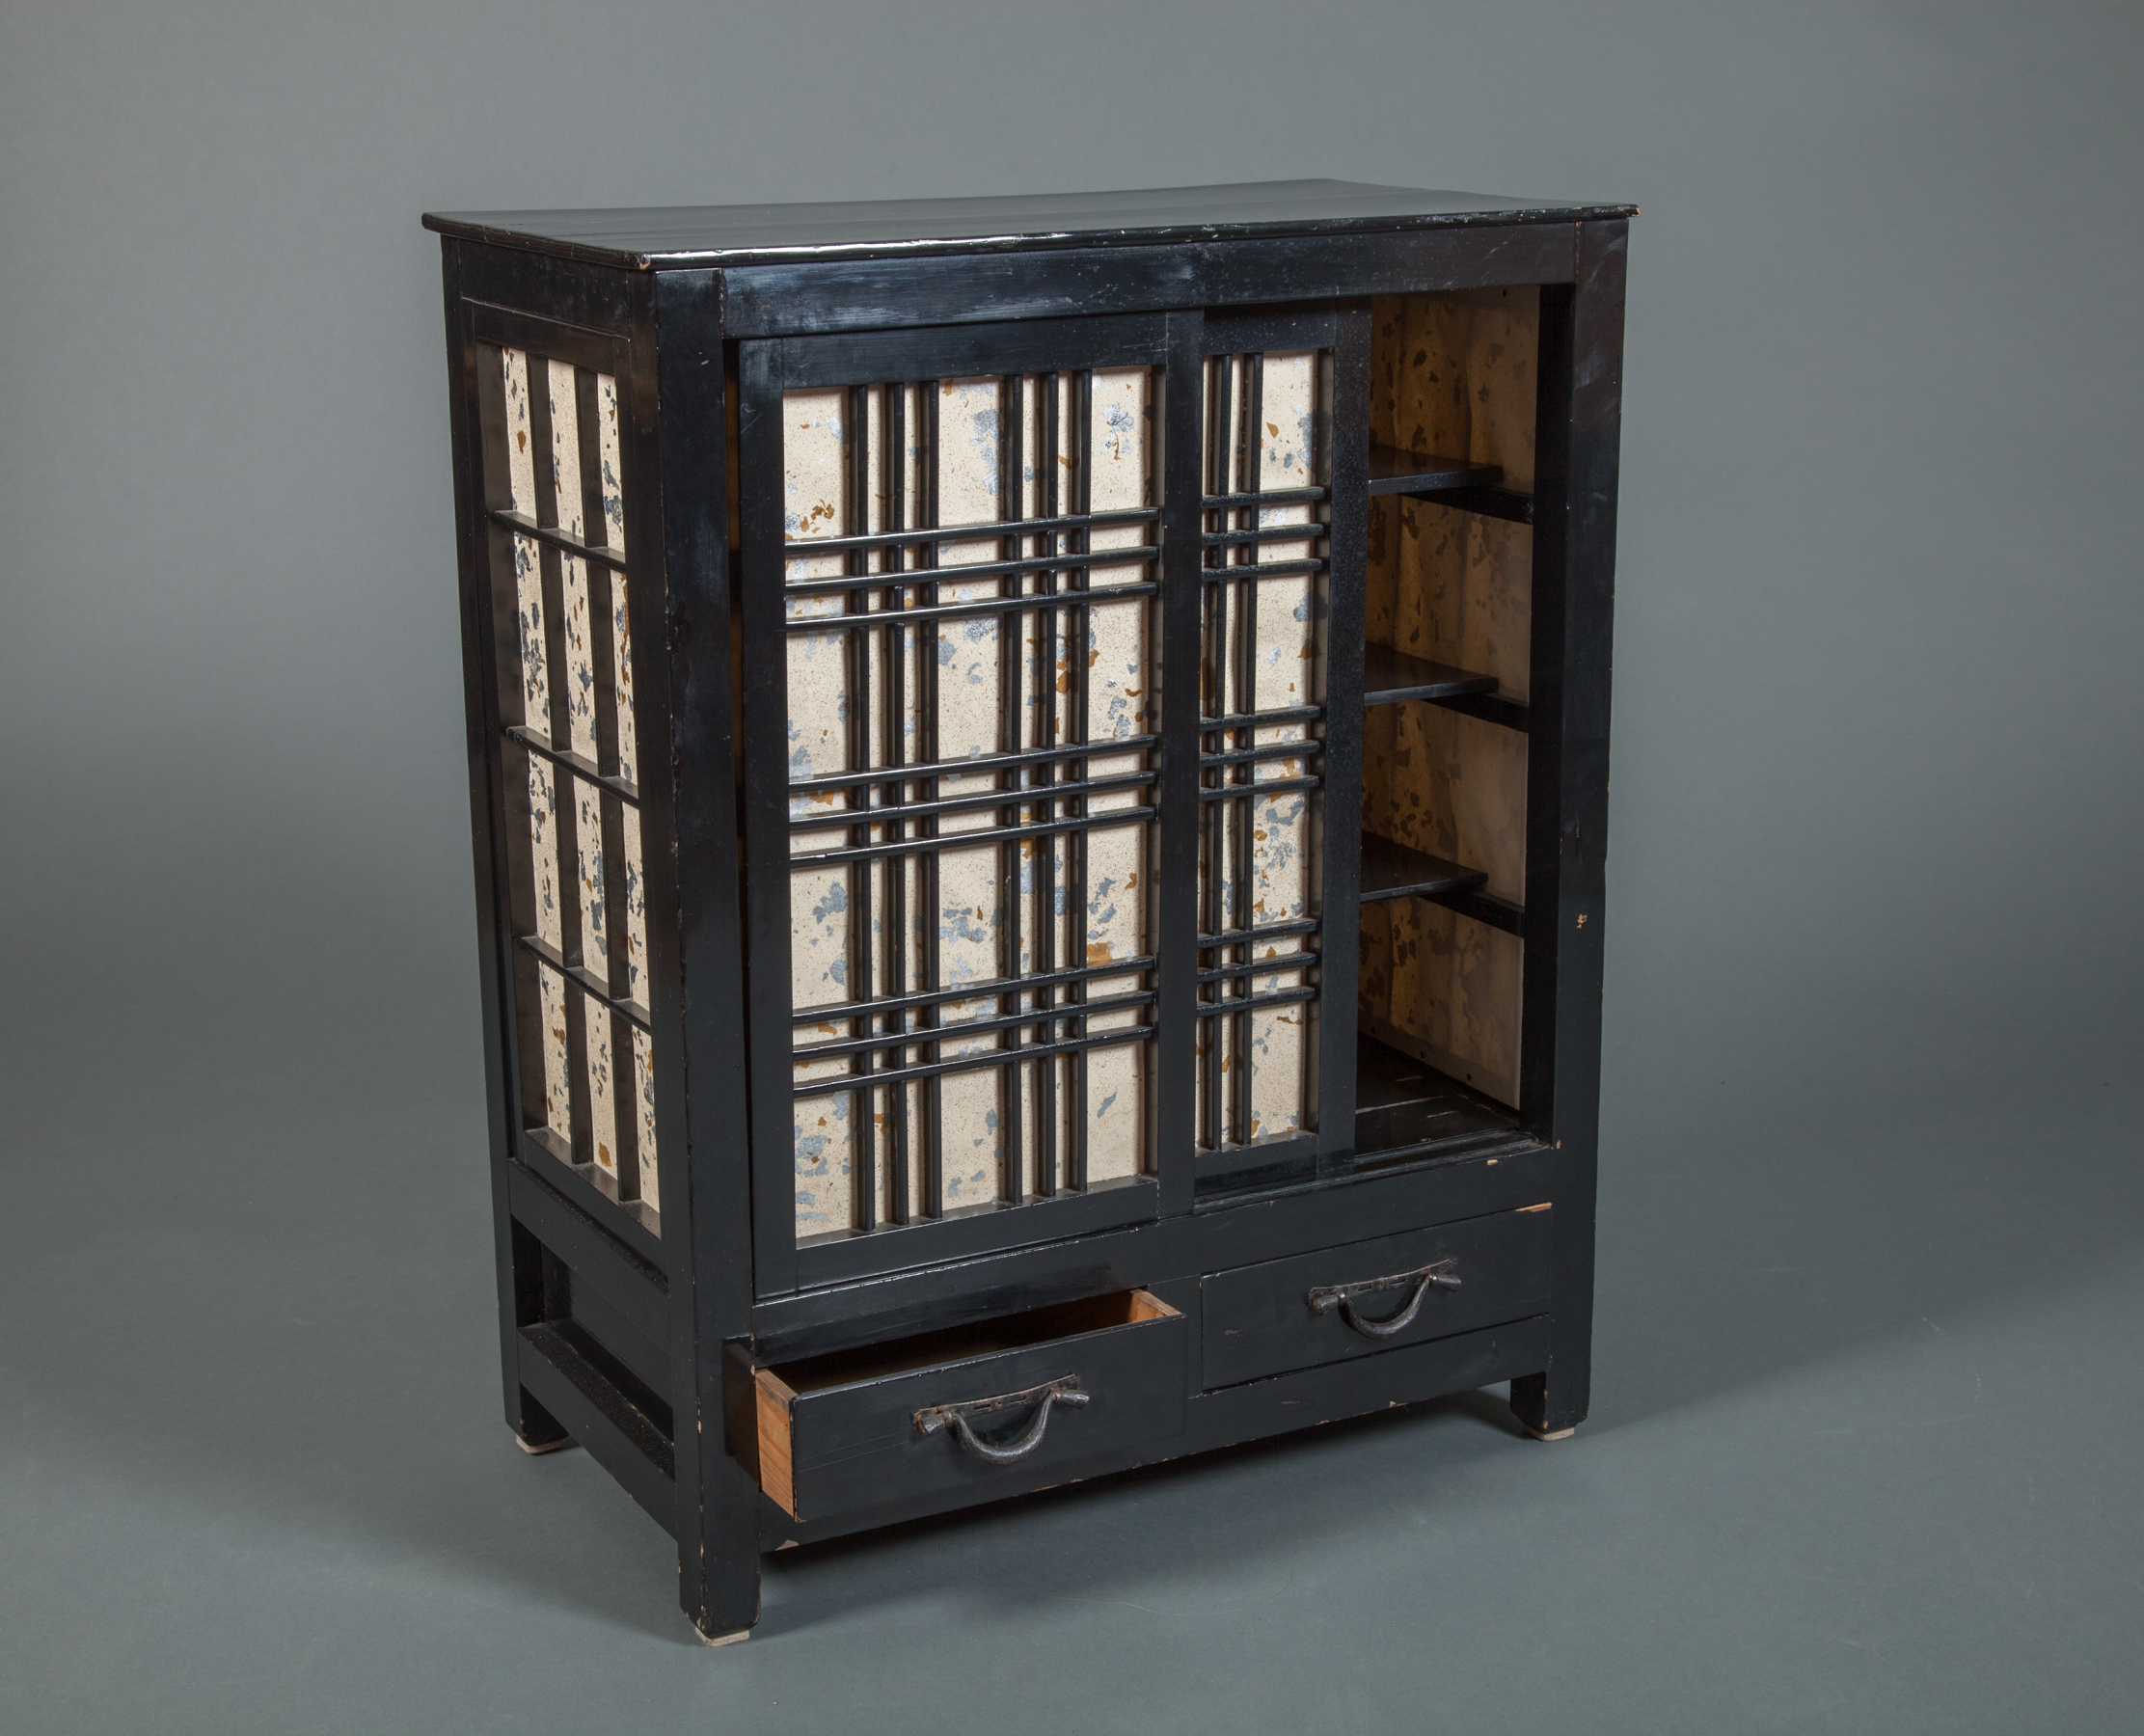 Small Japanese Cabinet with Shoji Sliding Doors